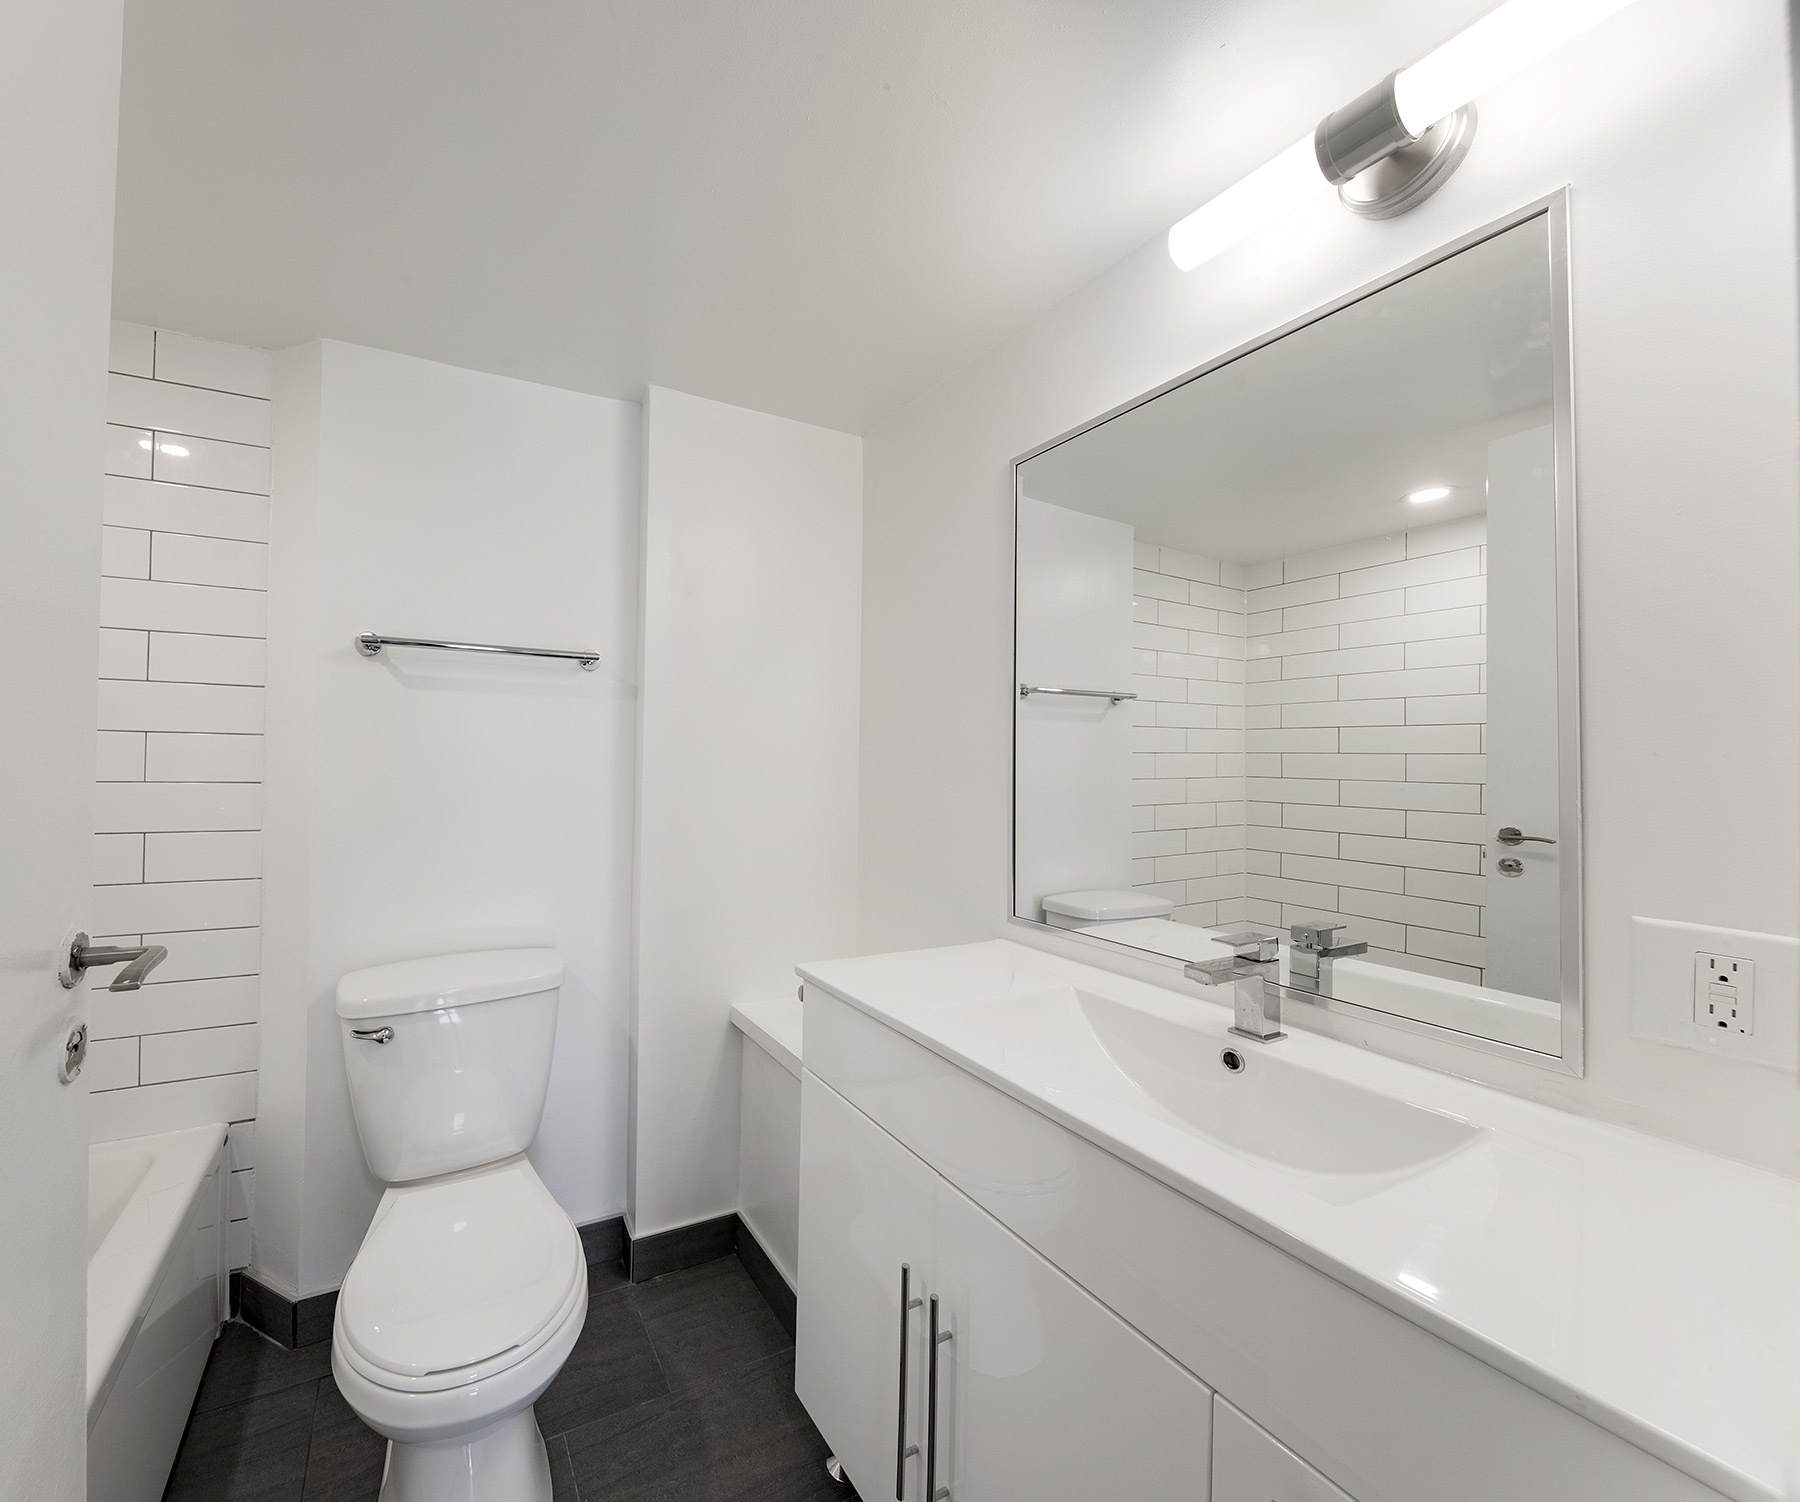 1 bedroom Apartments for rent in Cote-St-Luc at 5765 Cote St-Luc - Photo 06 - RentQuebecApartments – L401532